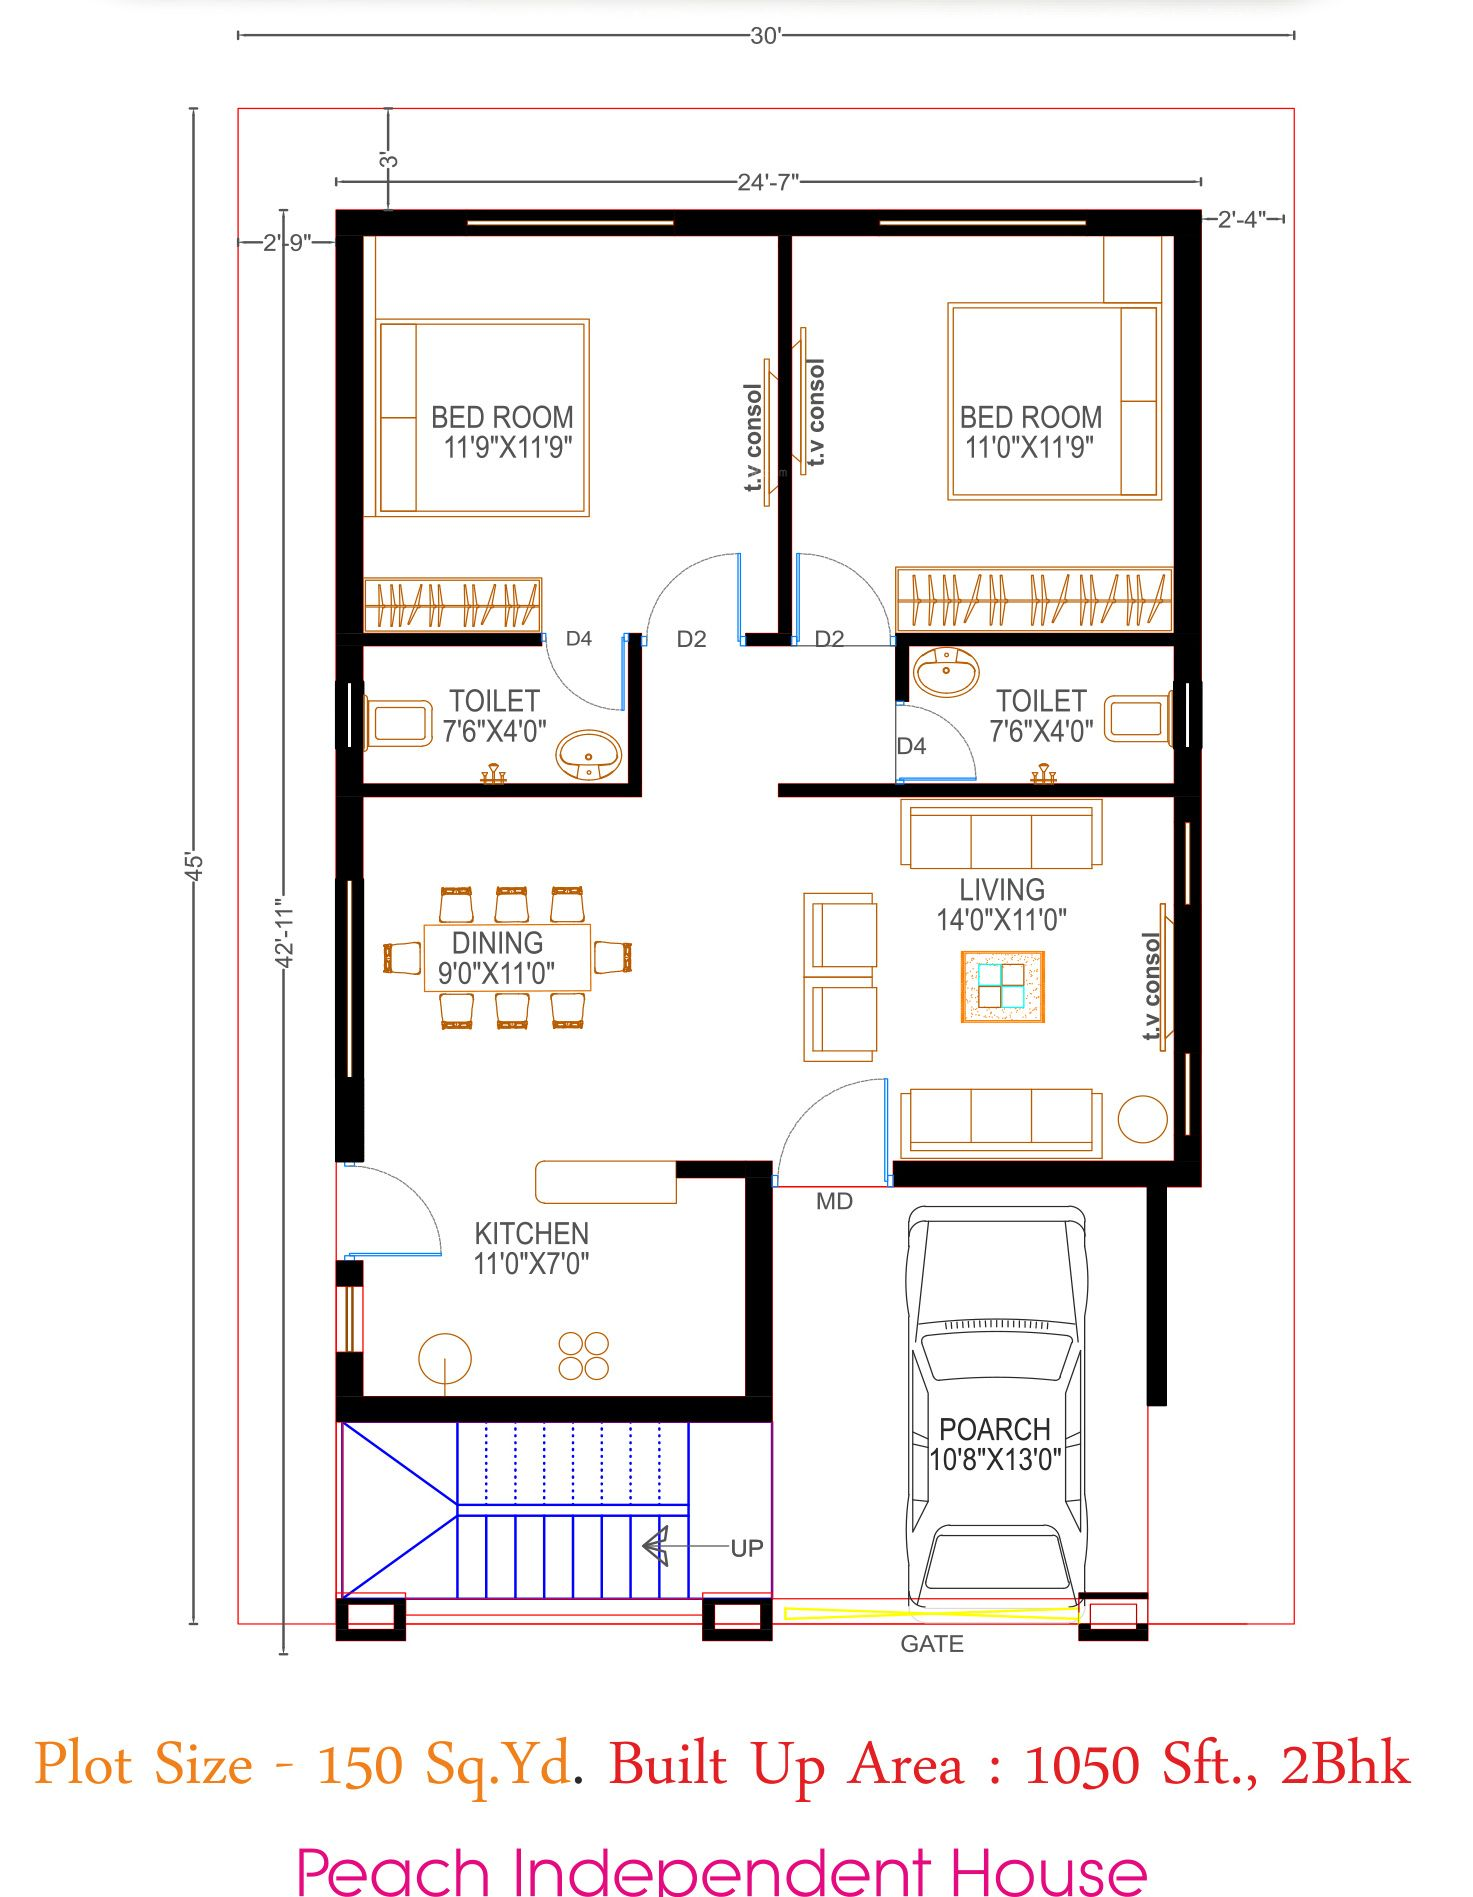 Image Result For Floor Plan 2bhk House Plan House Plans Indian House Plans